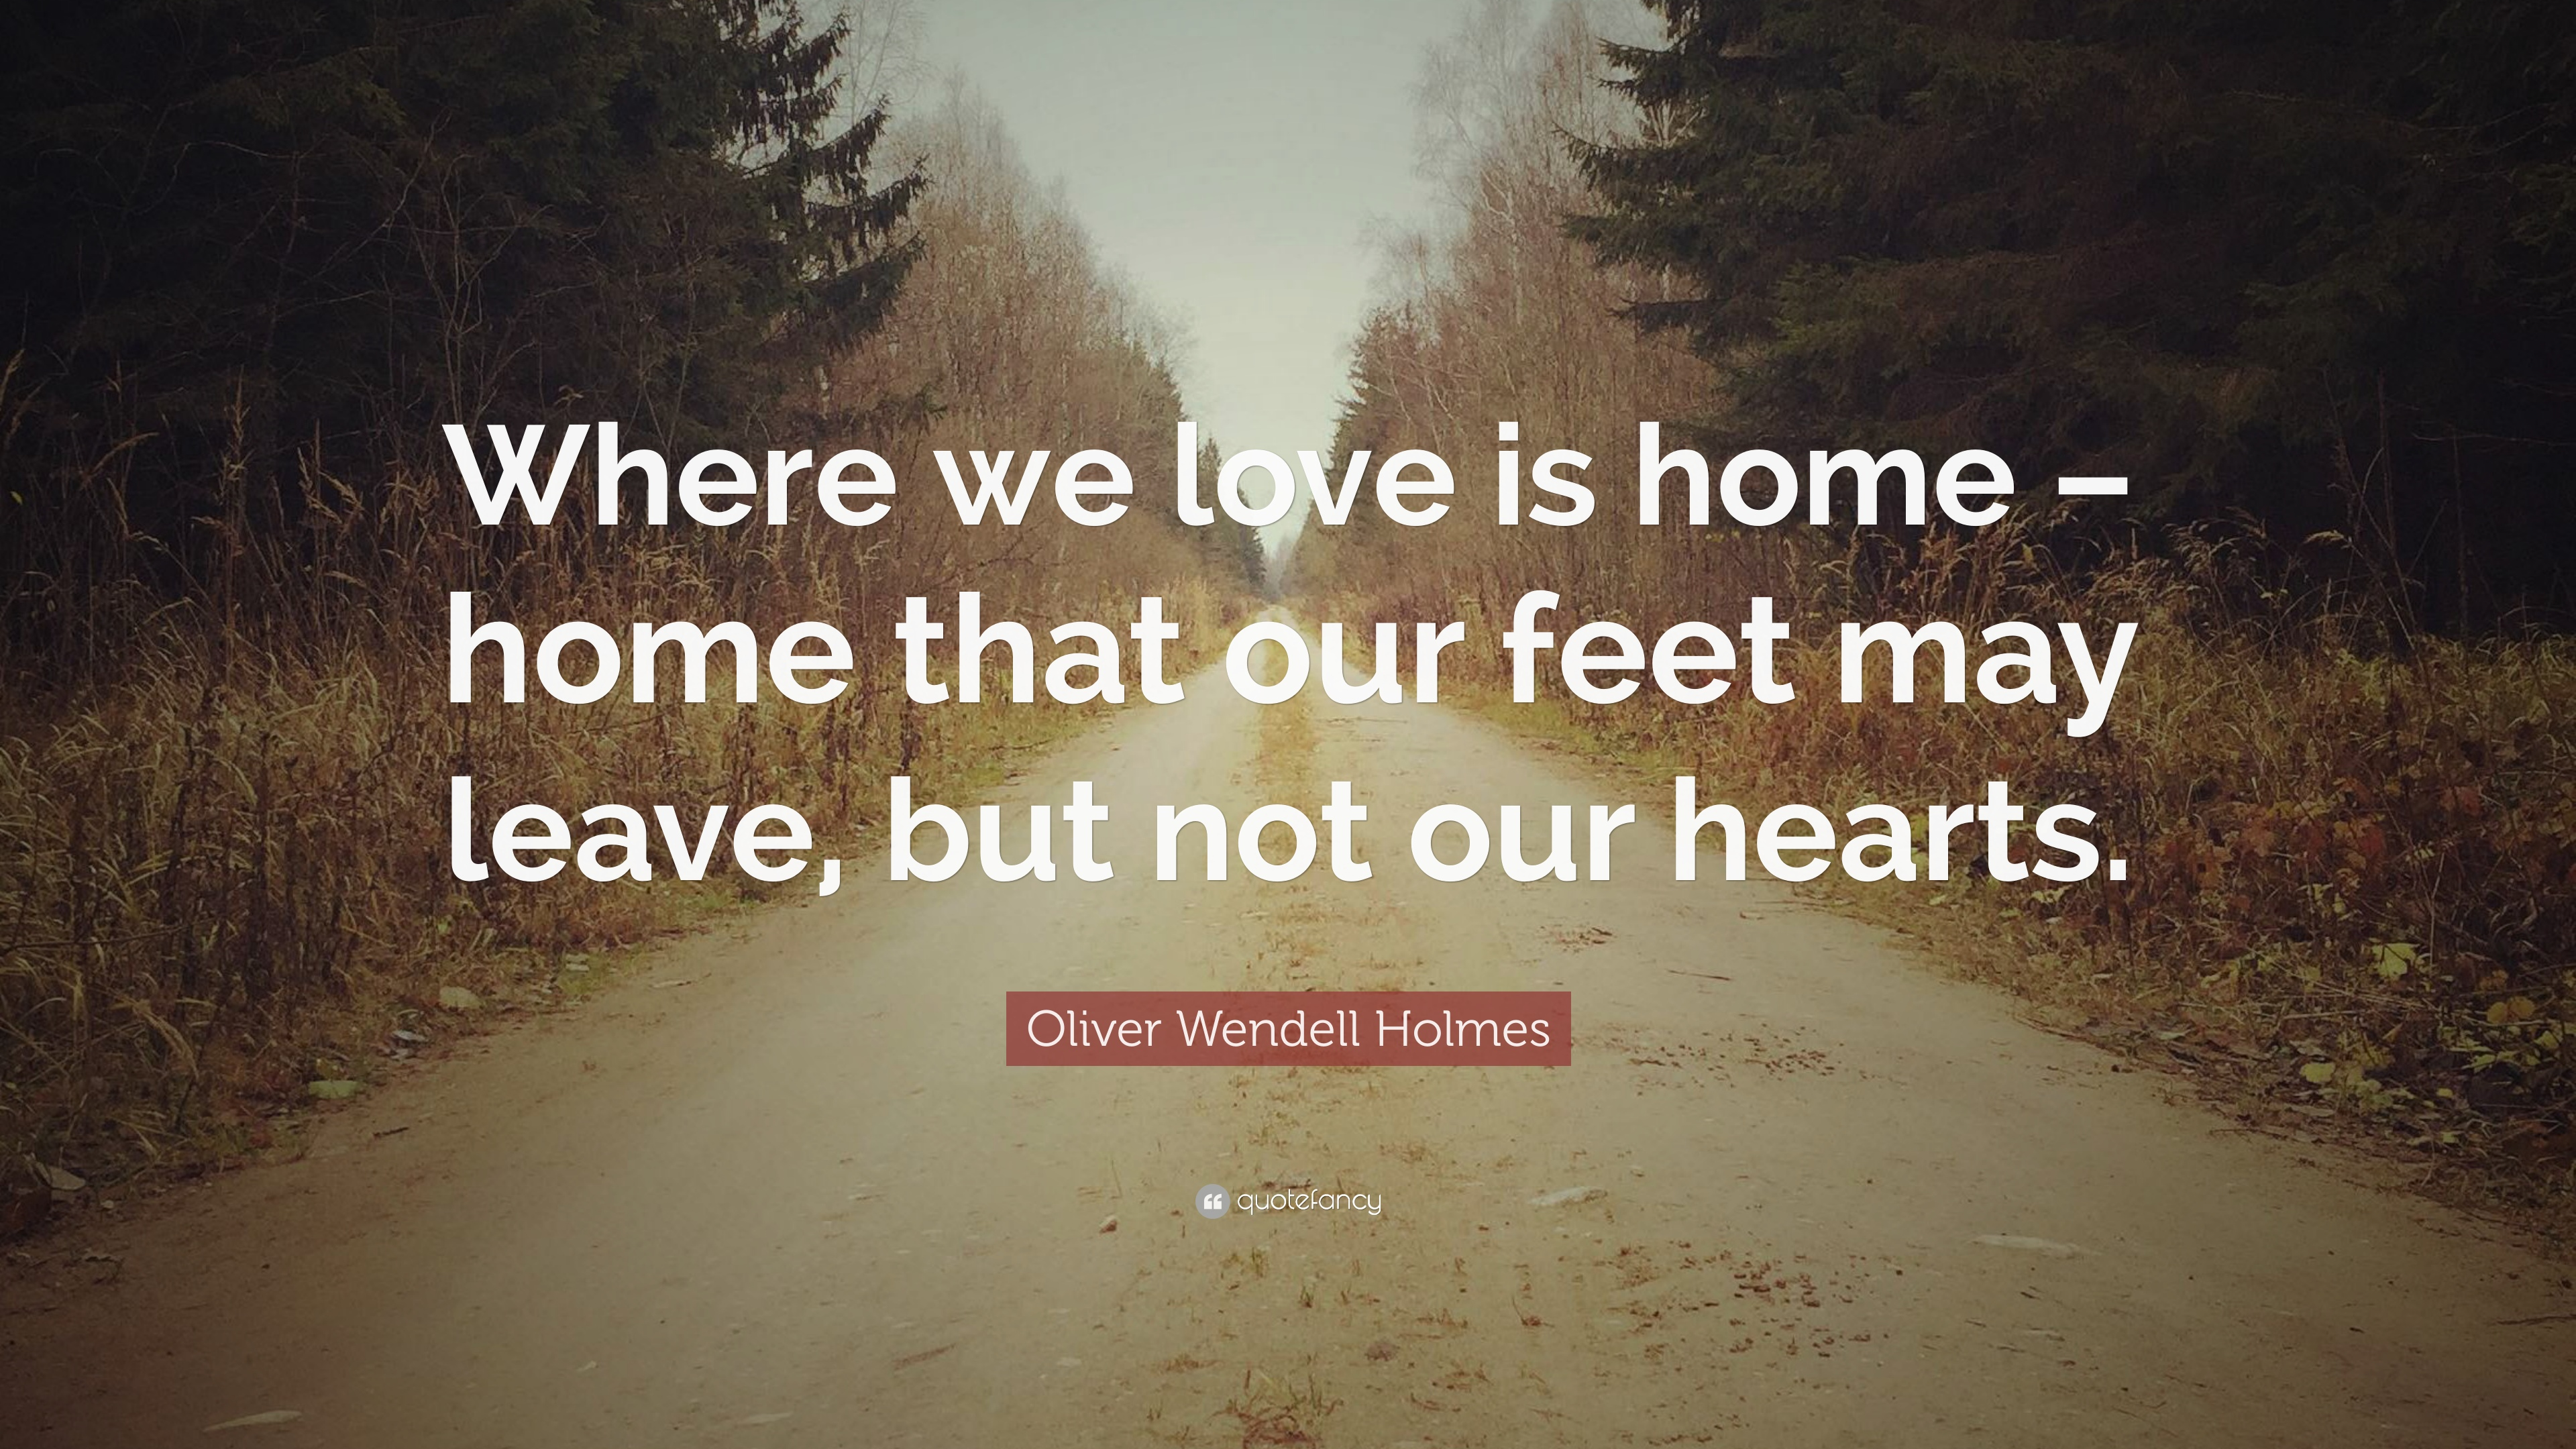 417497-Oliver-Wendell-Holmes-Quote-Where-we-love-is-home-home-that-our.jpg